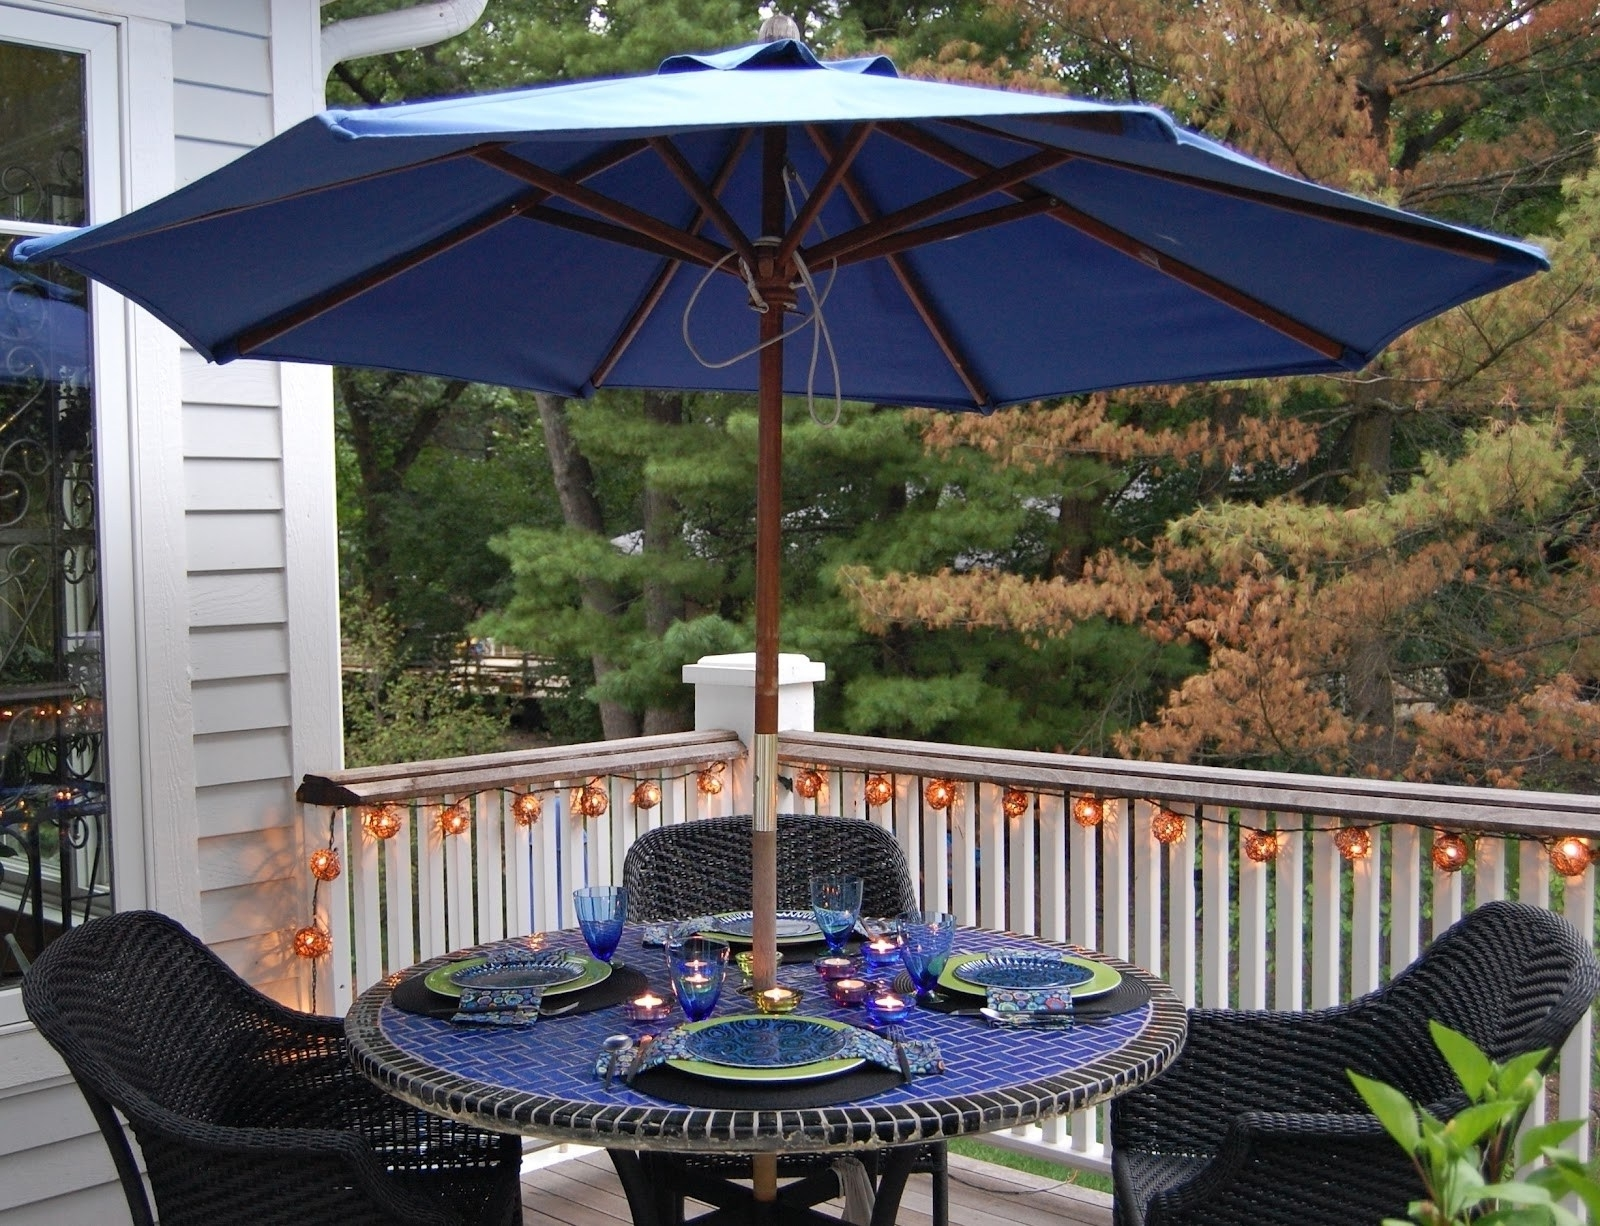 Patio: Amazing Small Patio Table With Umbrella Outdoor Furniture With Regard To Most Popular Small Patio Tables With Umbrellas (Gallery 1 of 20)